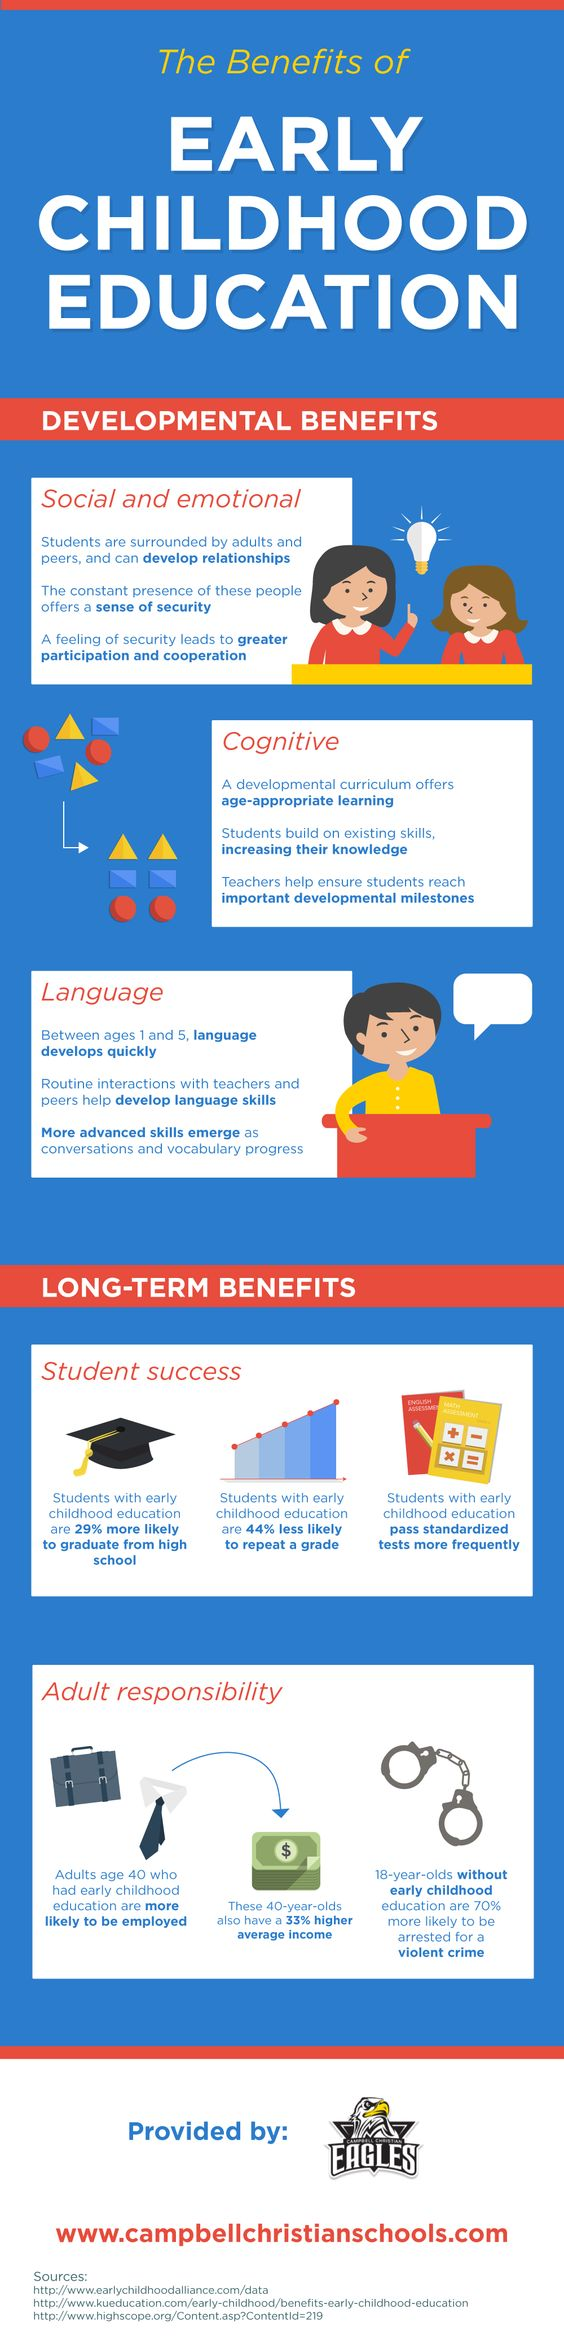 Did you know that students with early childhood education are 44% less likely than their peers to repeat a grade? Discover other reasons to enroll your child in an education program starting a young age on this infographic from a private school in Campbell.